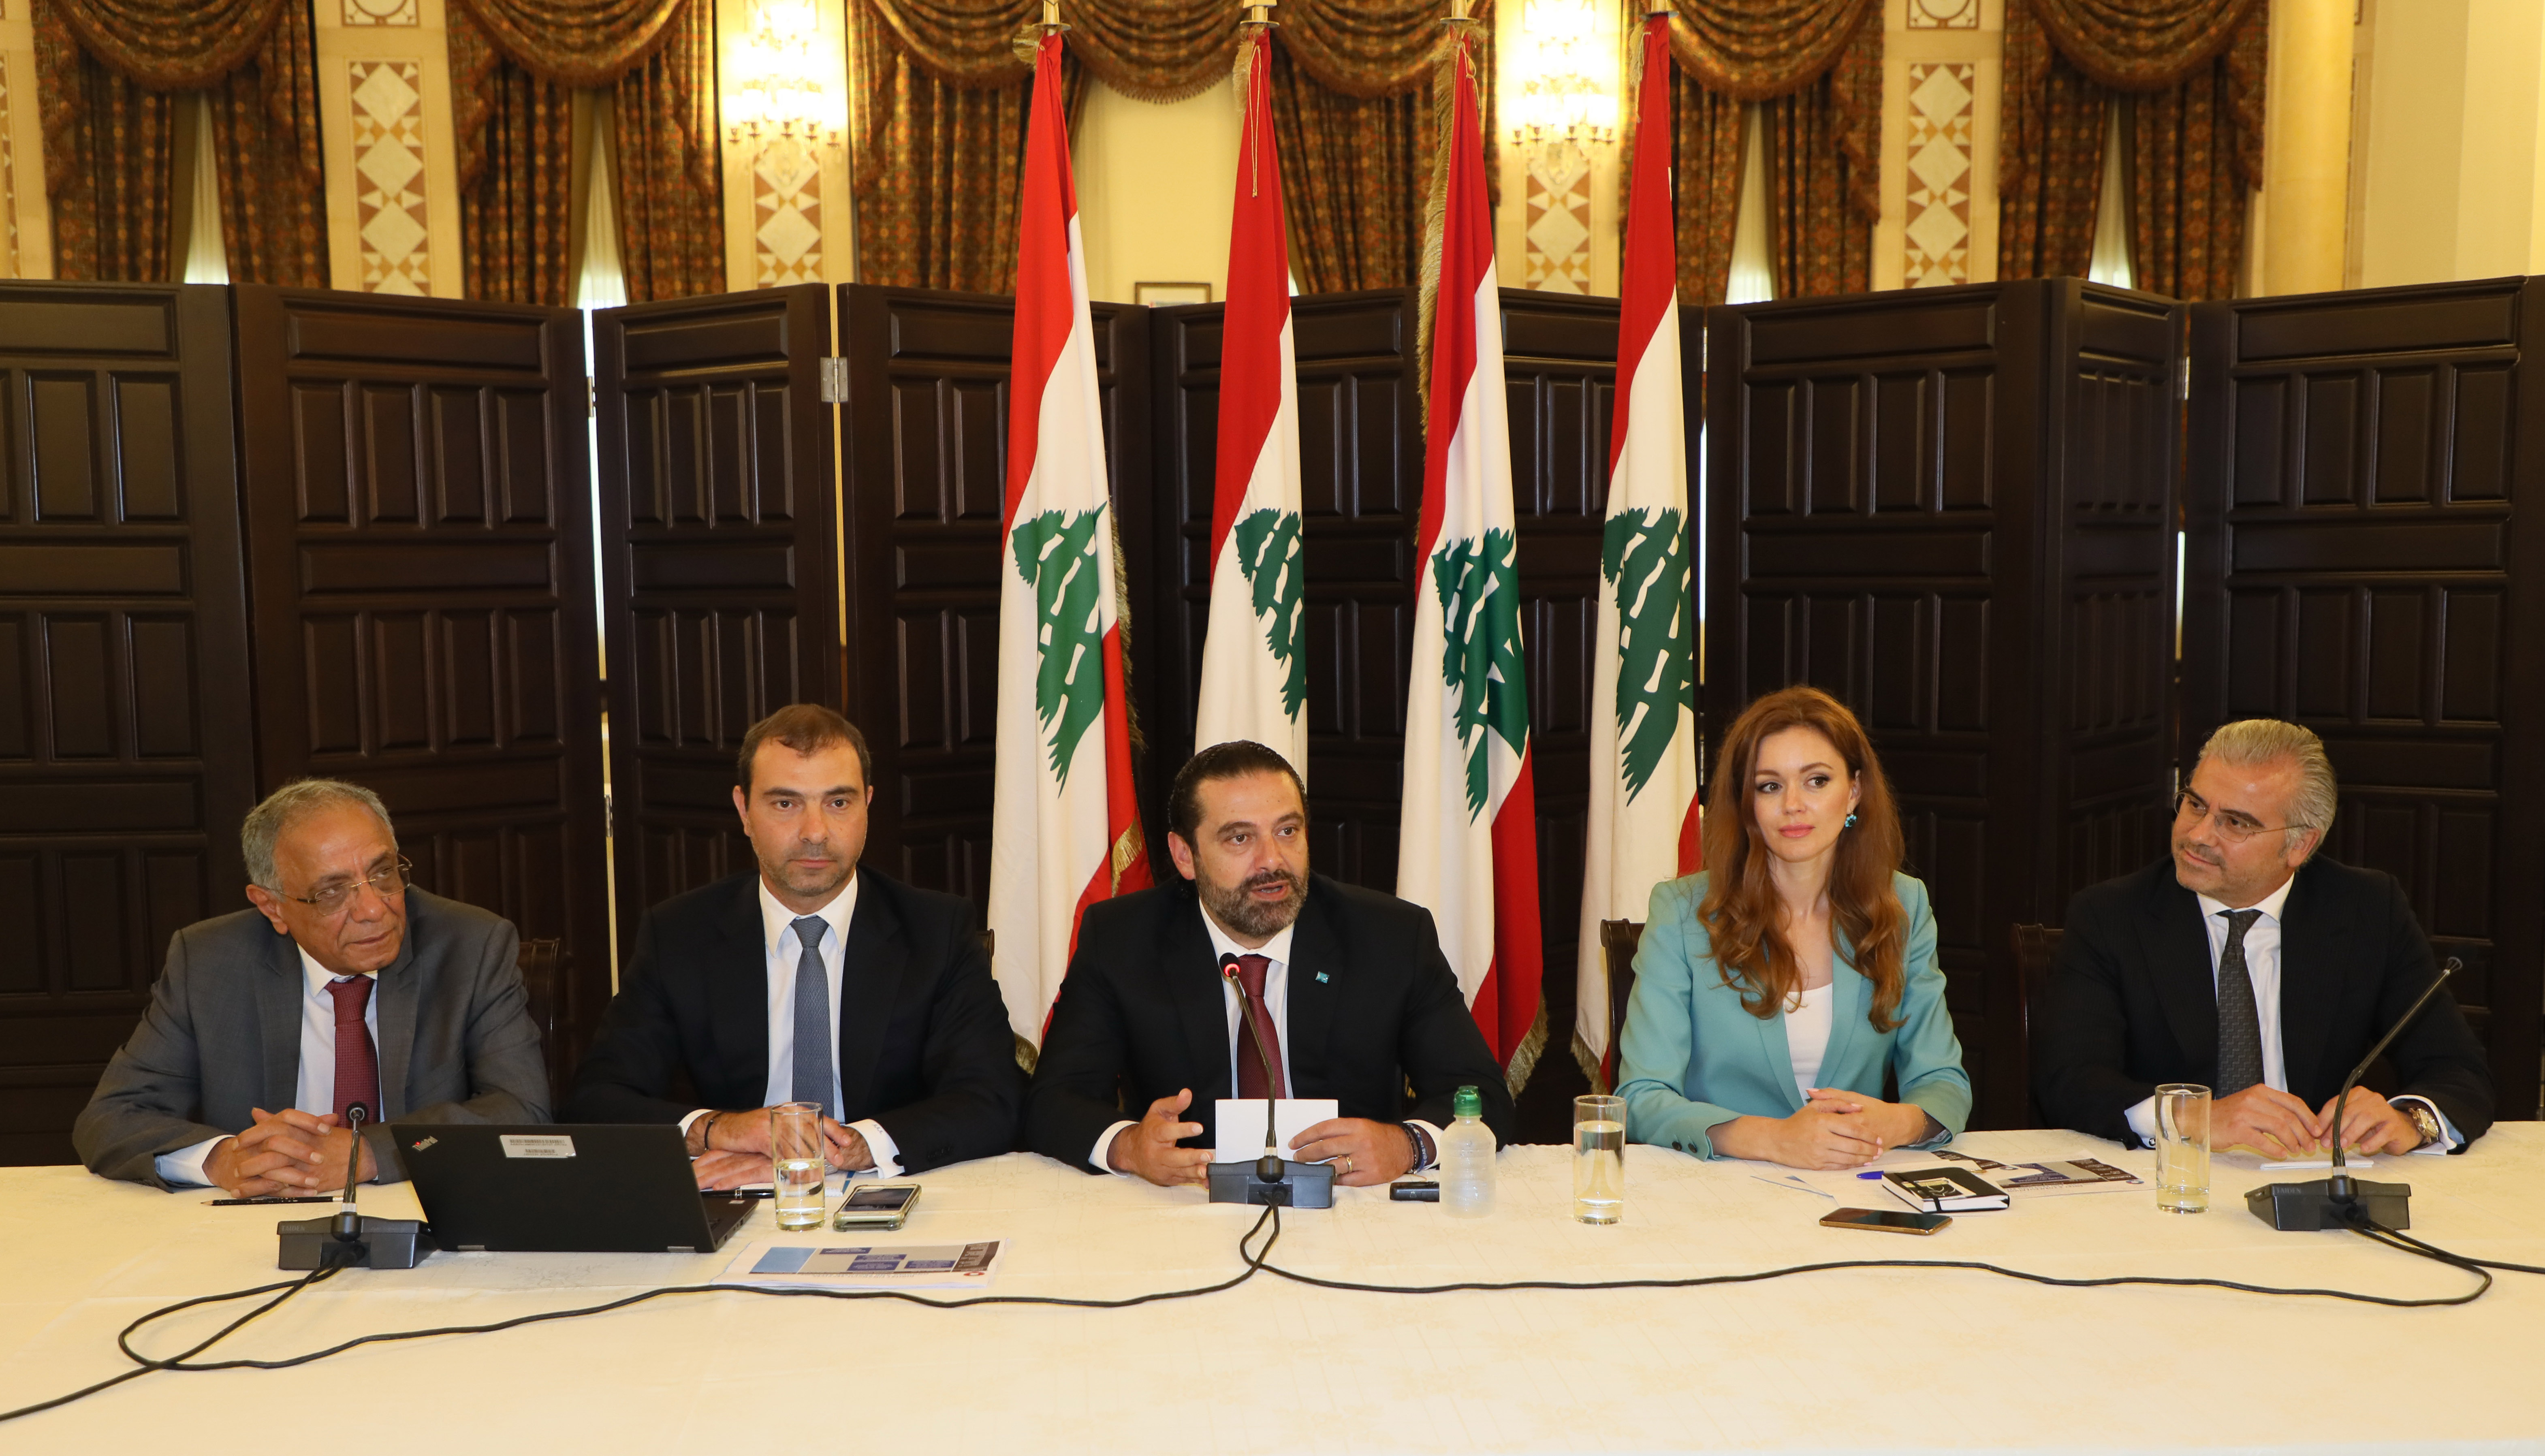 Pr Minister Saad Hariri Attnes a Workshop at Grand Serial 1